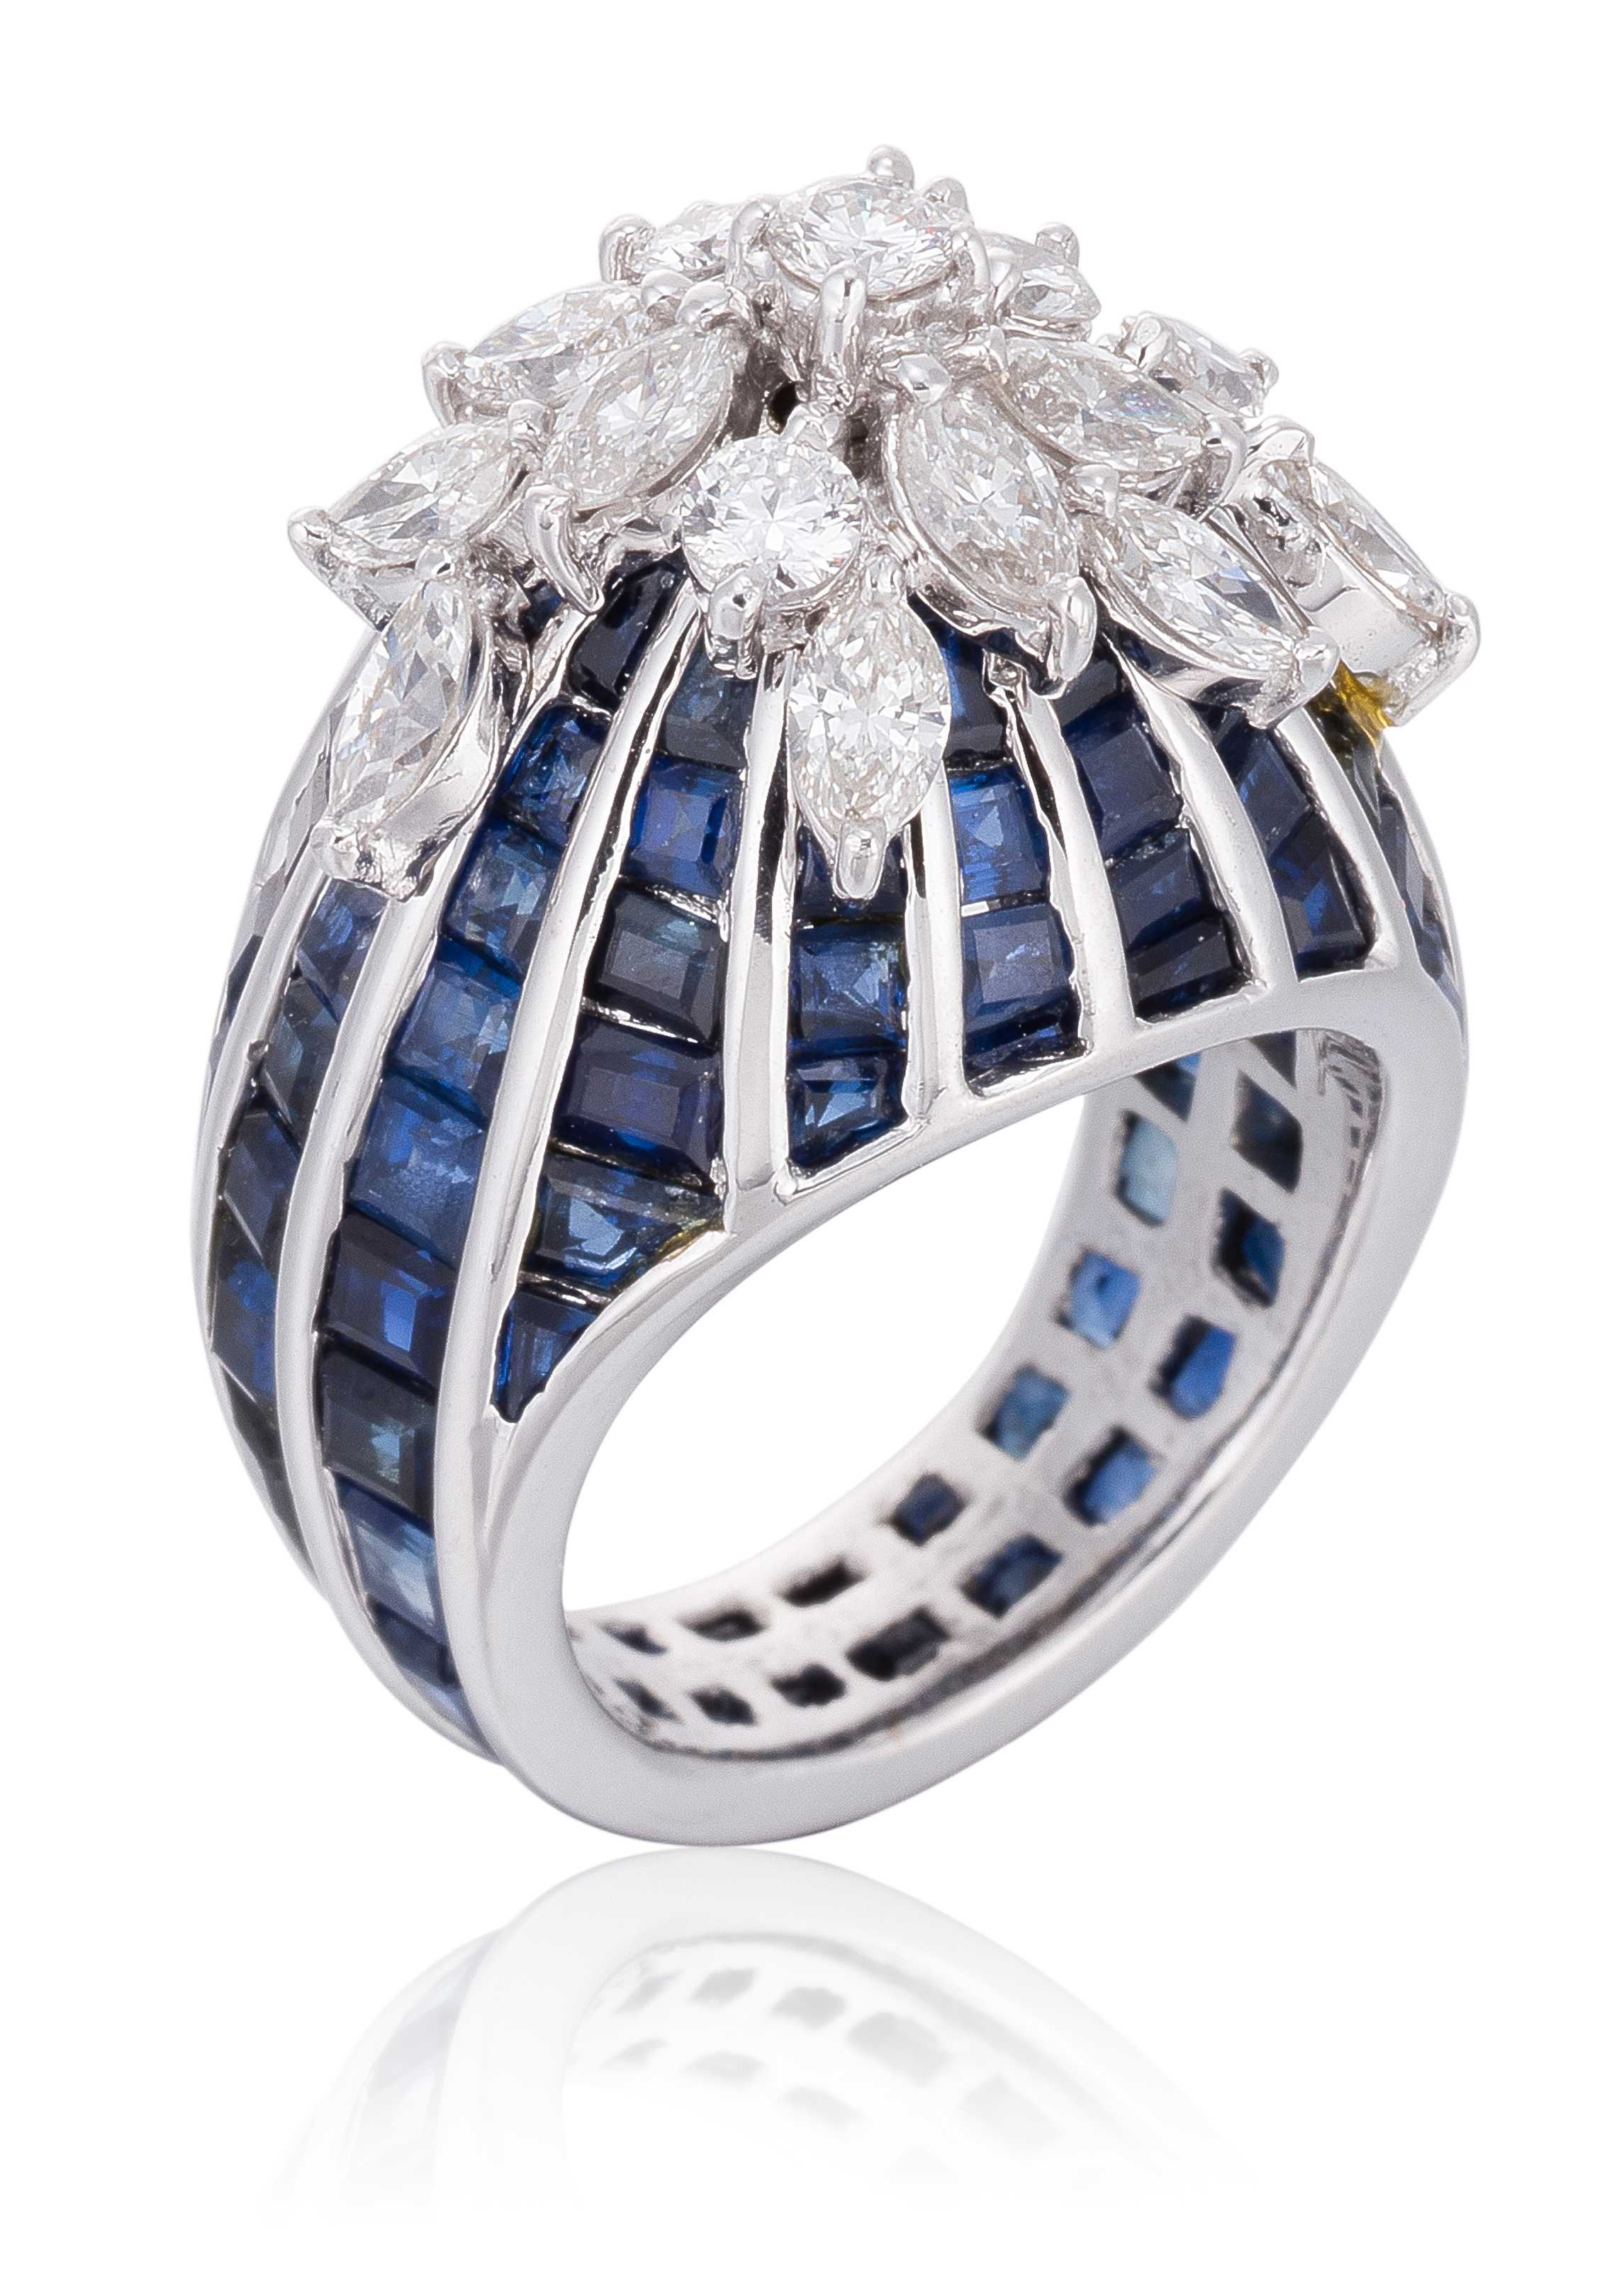 jewellery blue ring treasured gb london rings collection royal links diamond silver diamonds en amp collections sterling of coloured white